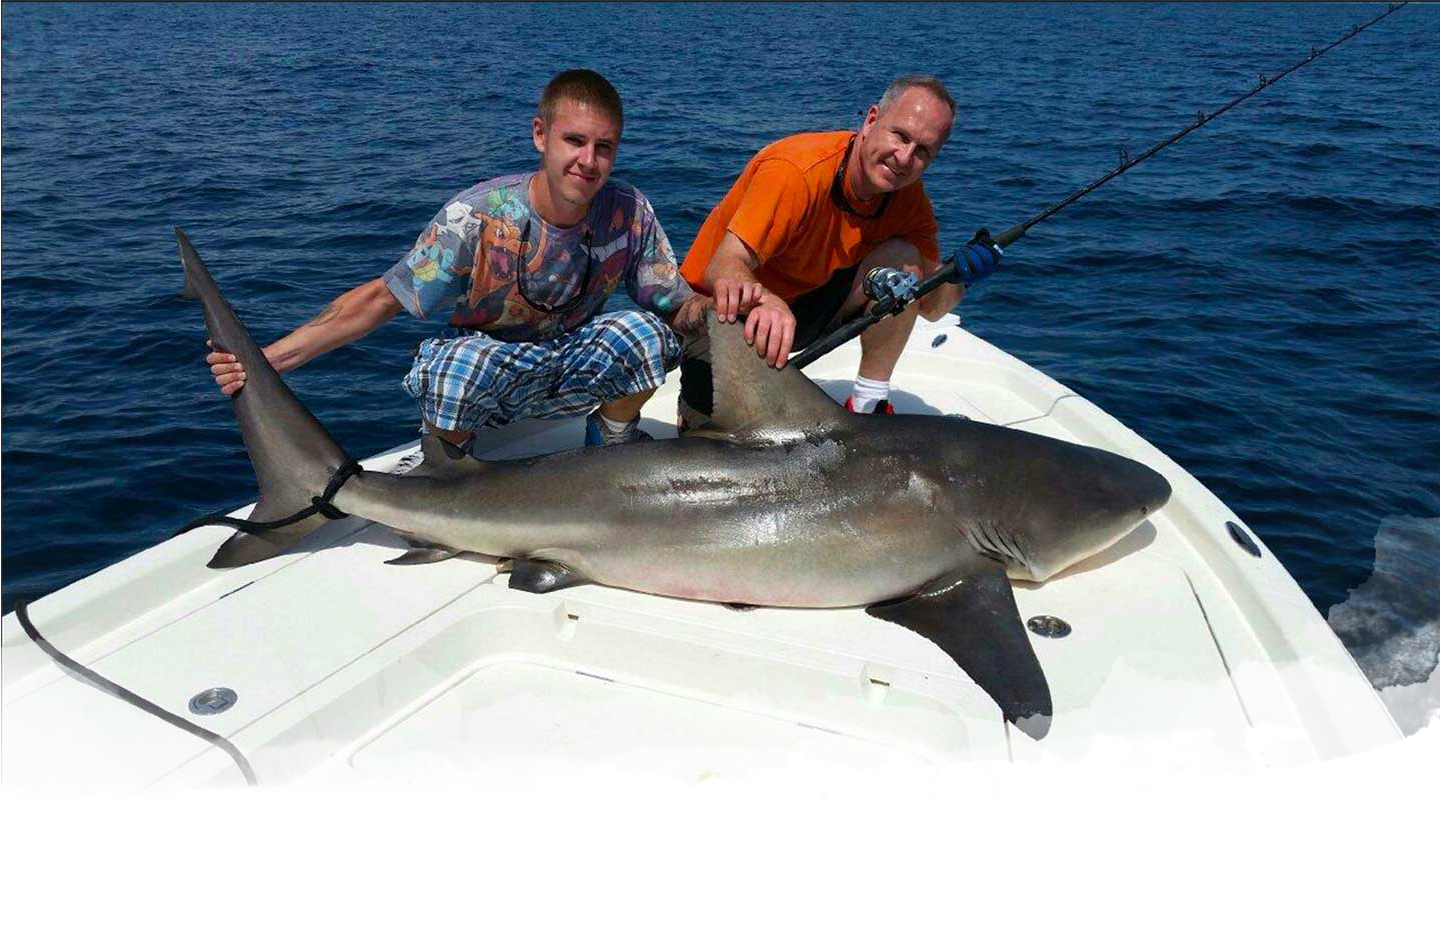 Top rated shark fishing charters in florida world class for Shark fishing in florida